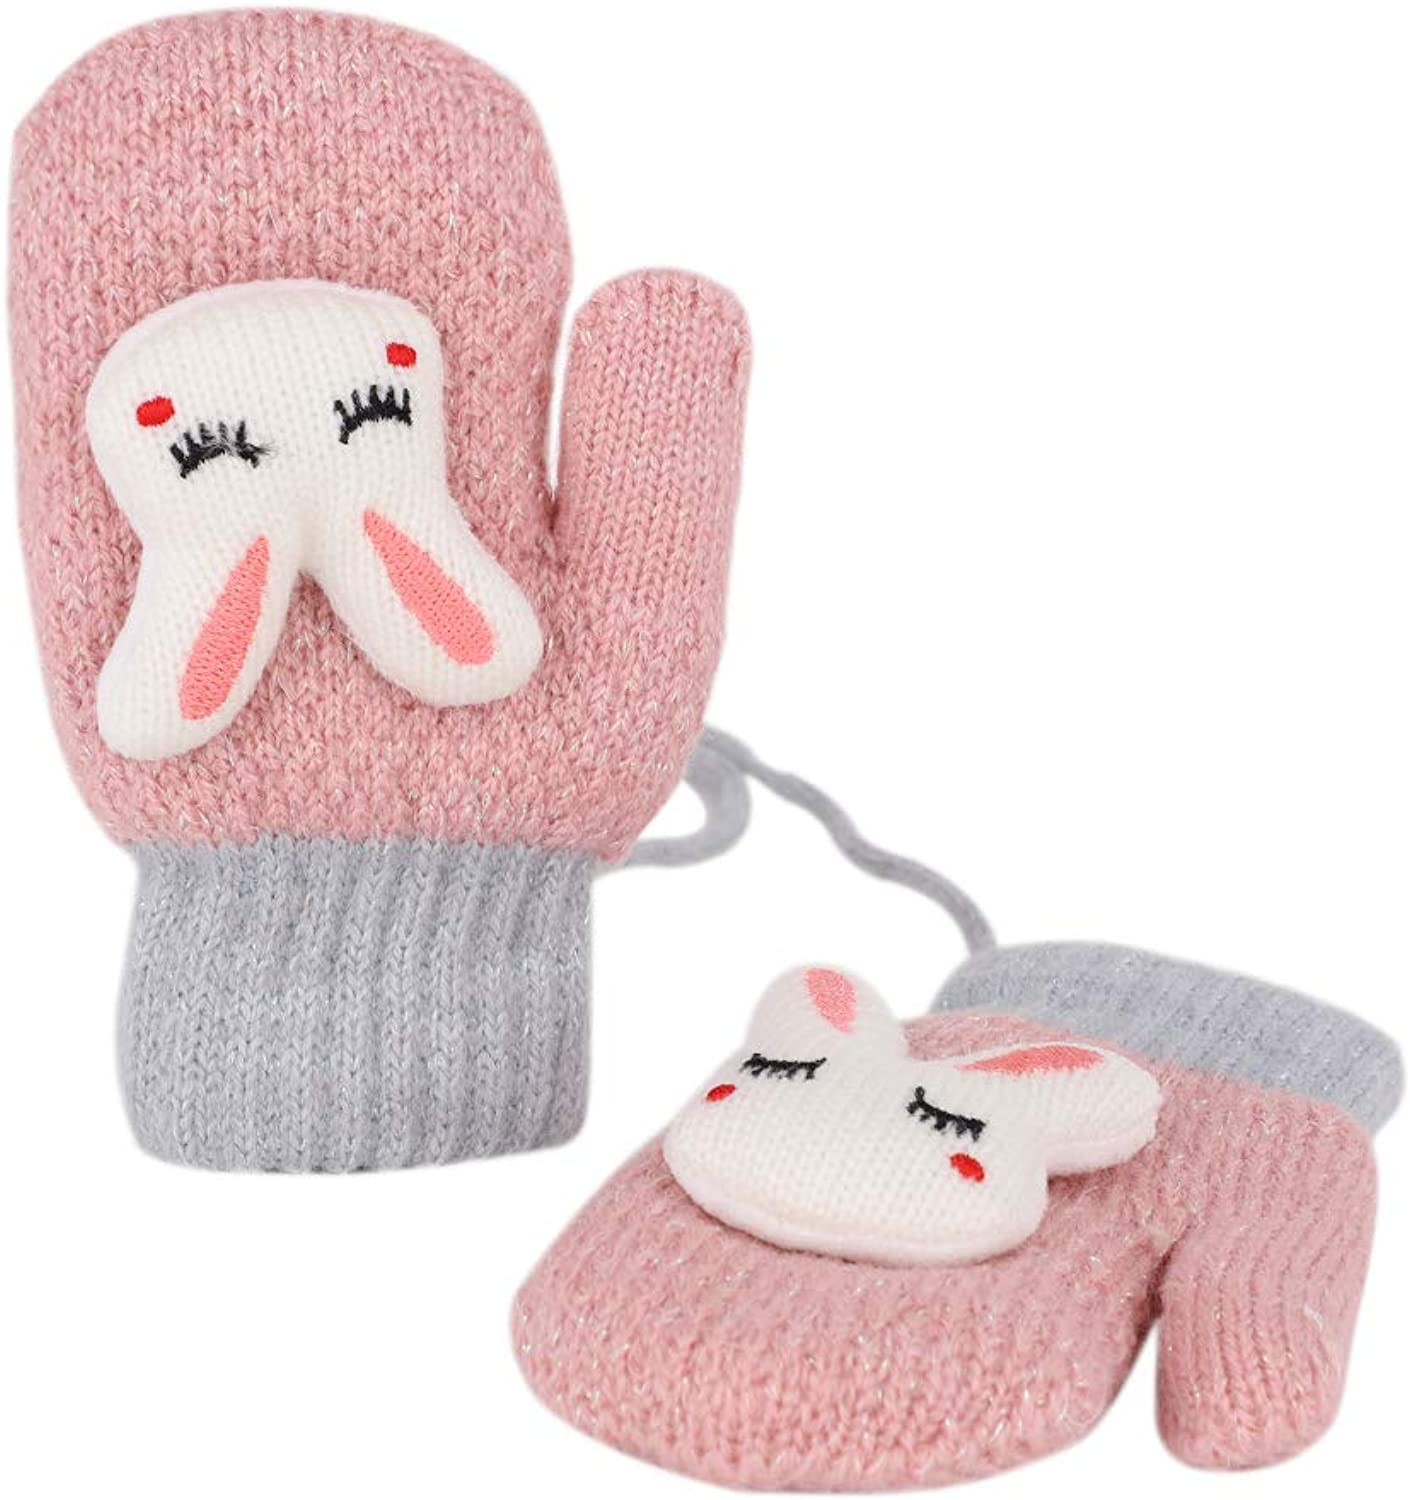 Cartoon Full Finger Fluffy Skiing Mittens Soft Chunky Thermal Mitten Winter Warm Knitted Hand Warmer Christmas Gift for 2-6 Years Kids Fleece Lining Winter Warm Insulated Gloves